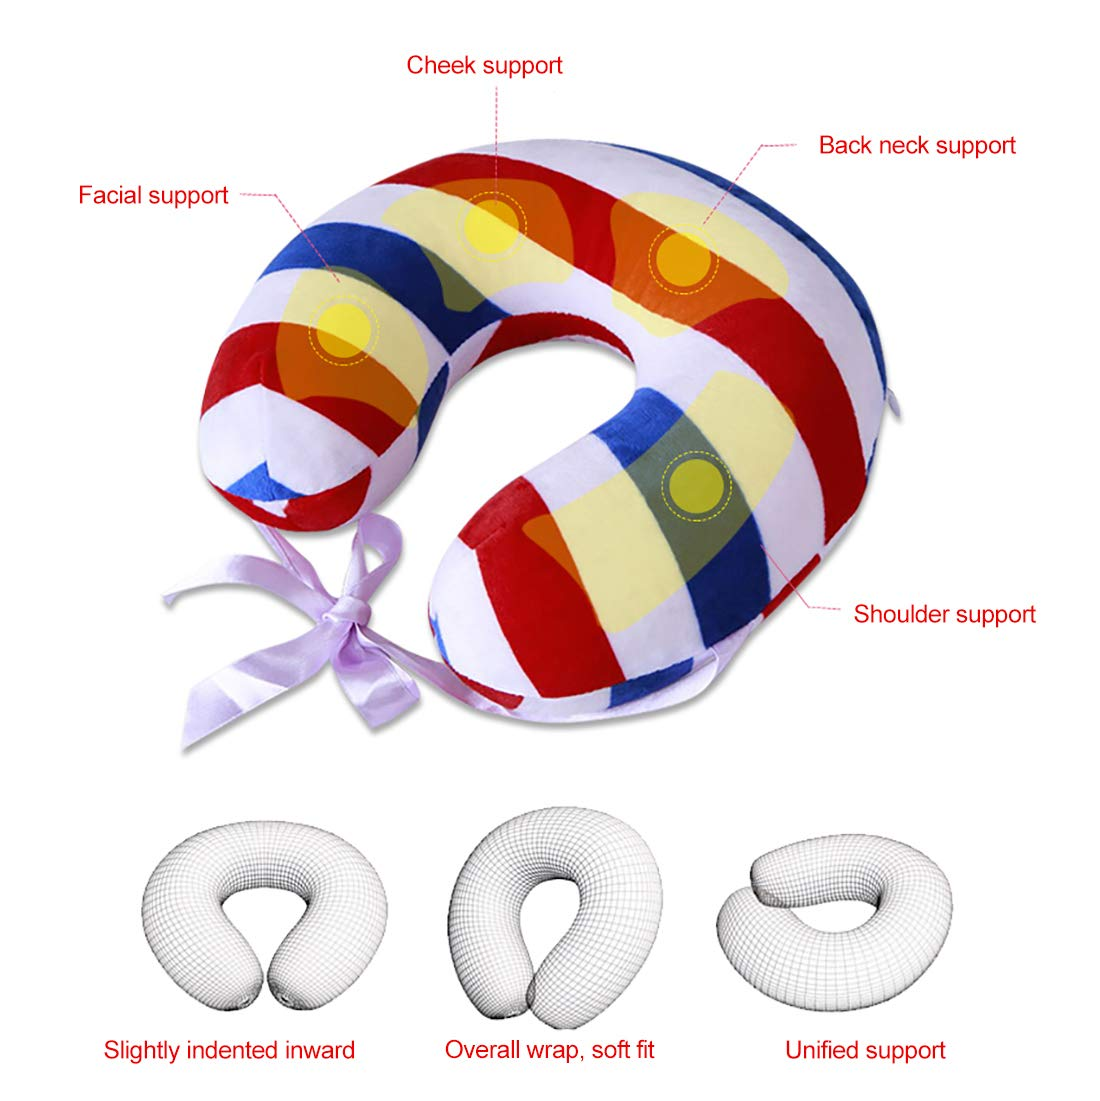 Amazon.com: InBlossoms Portable Travel Pillow, Lightweight Neck ...